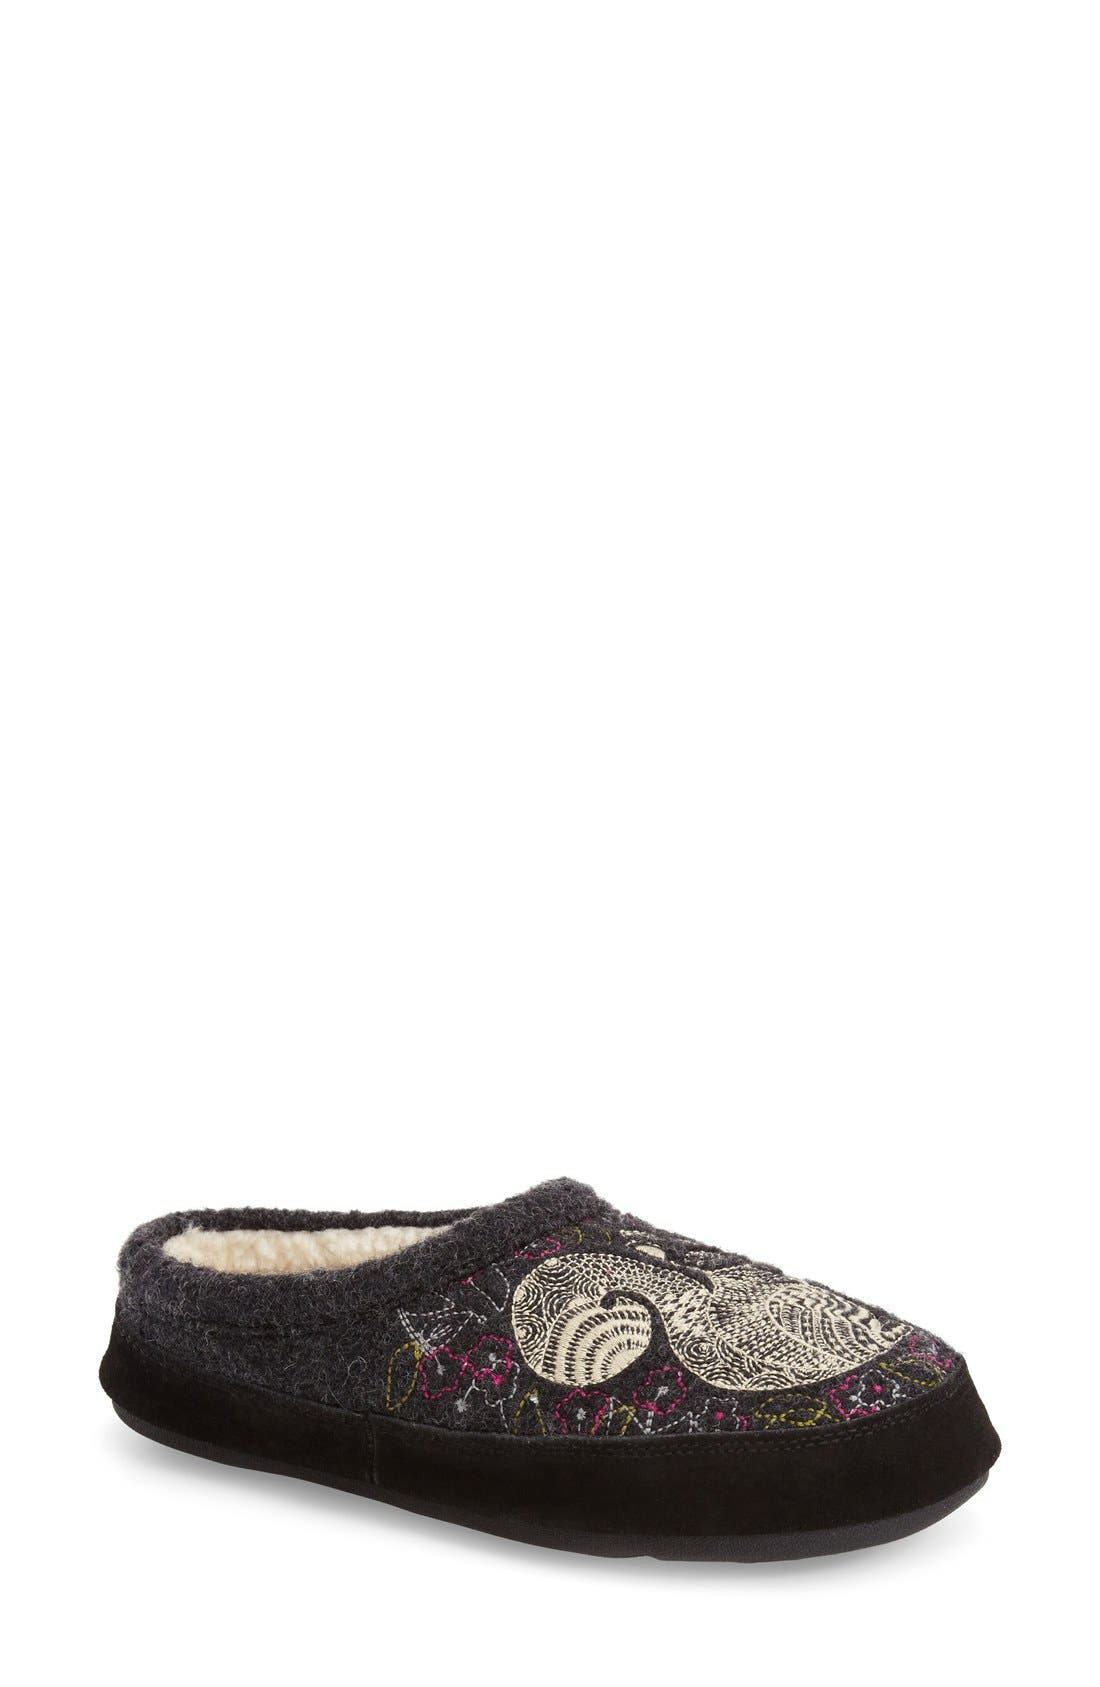 'Forest' Wool Mule Slipper,                             Main thumbnail 1, color,                             Grey Squirrel